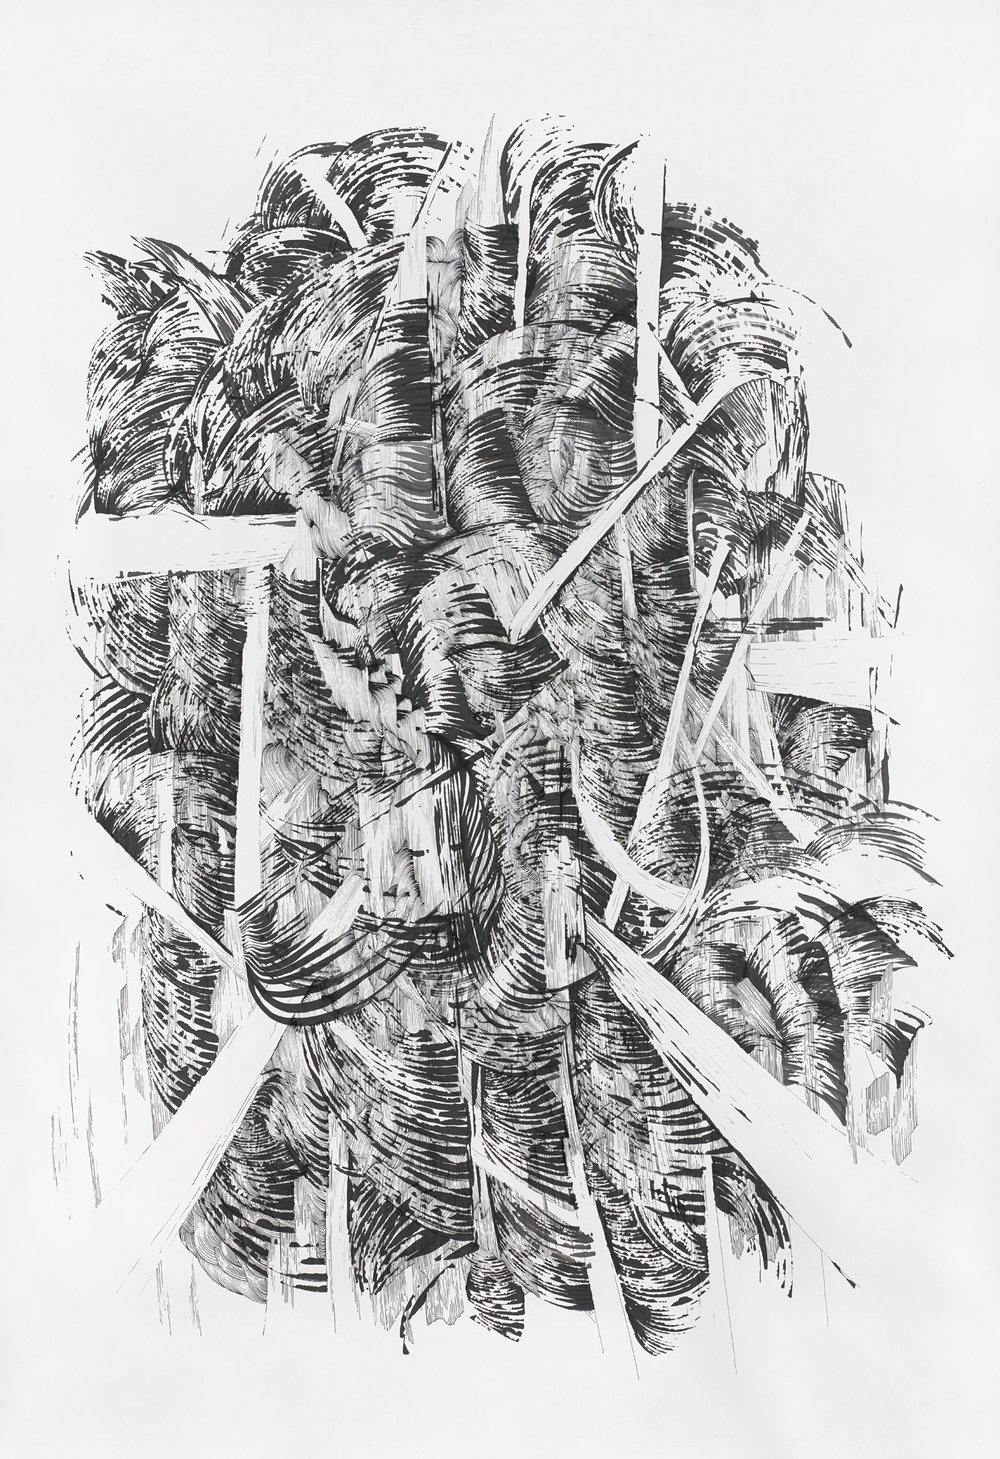 Bettina Krieg | P 164-1 Untitled | Ink on Paper | 200 x 150 cm | 2014